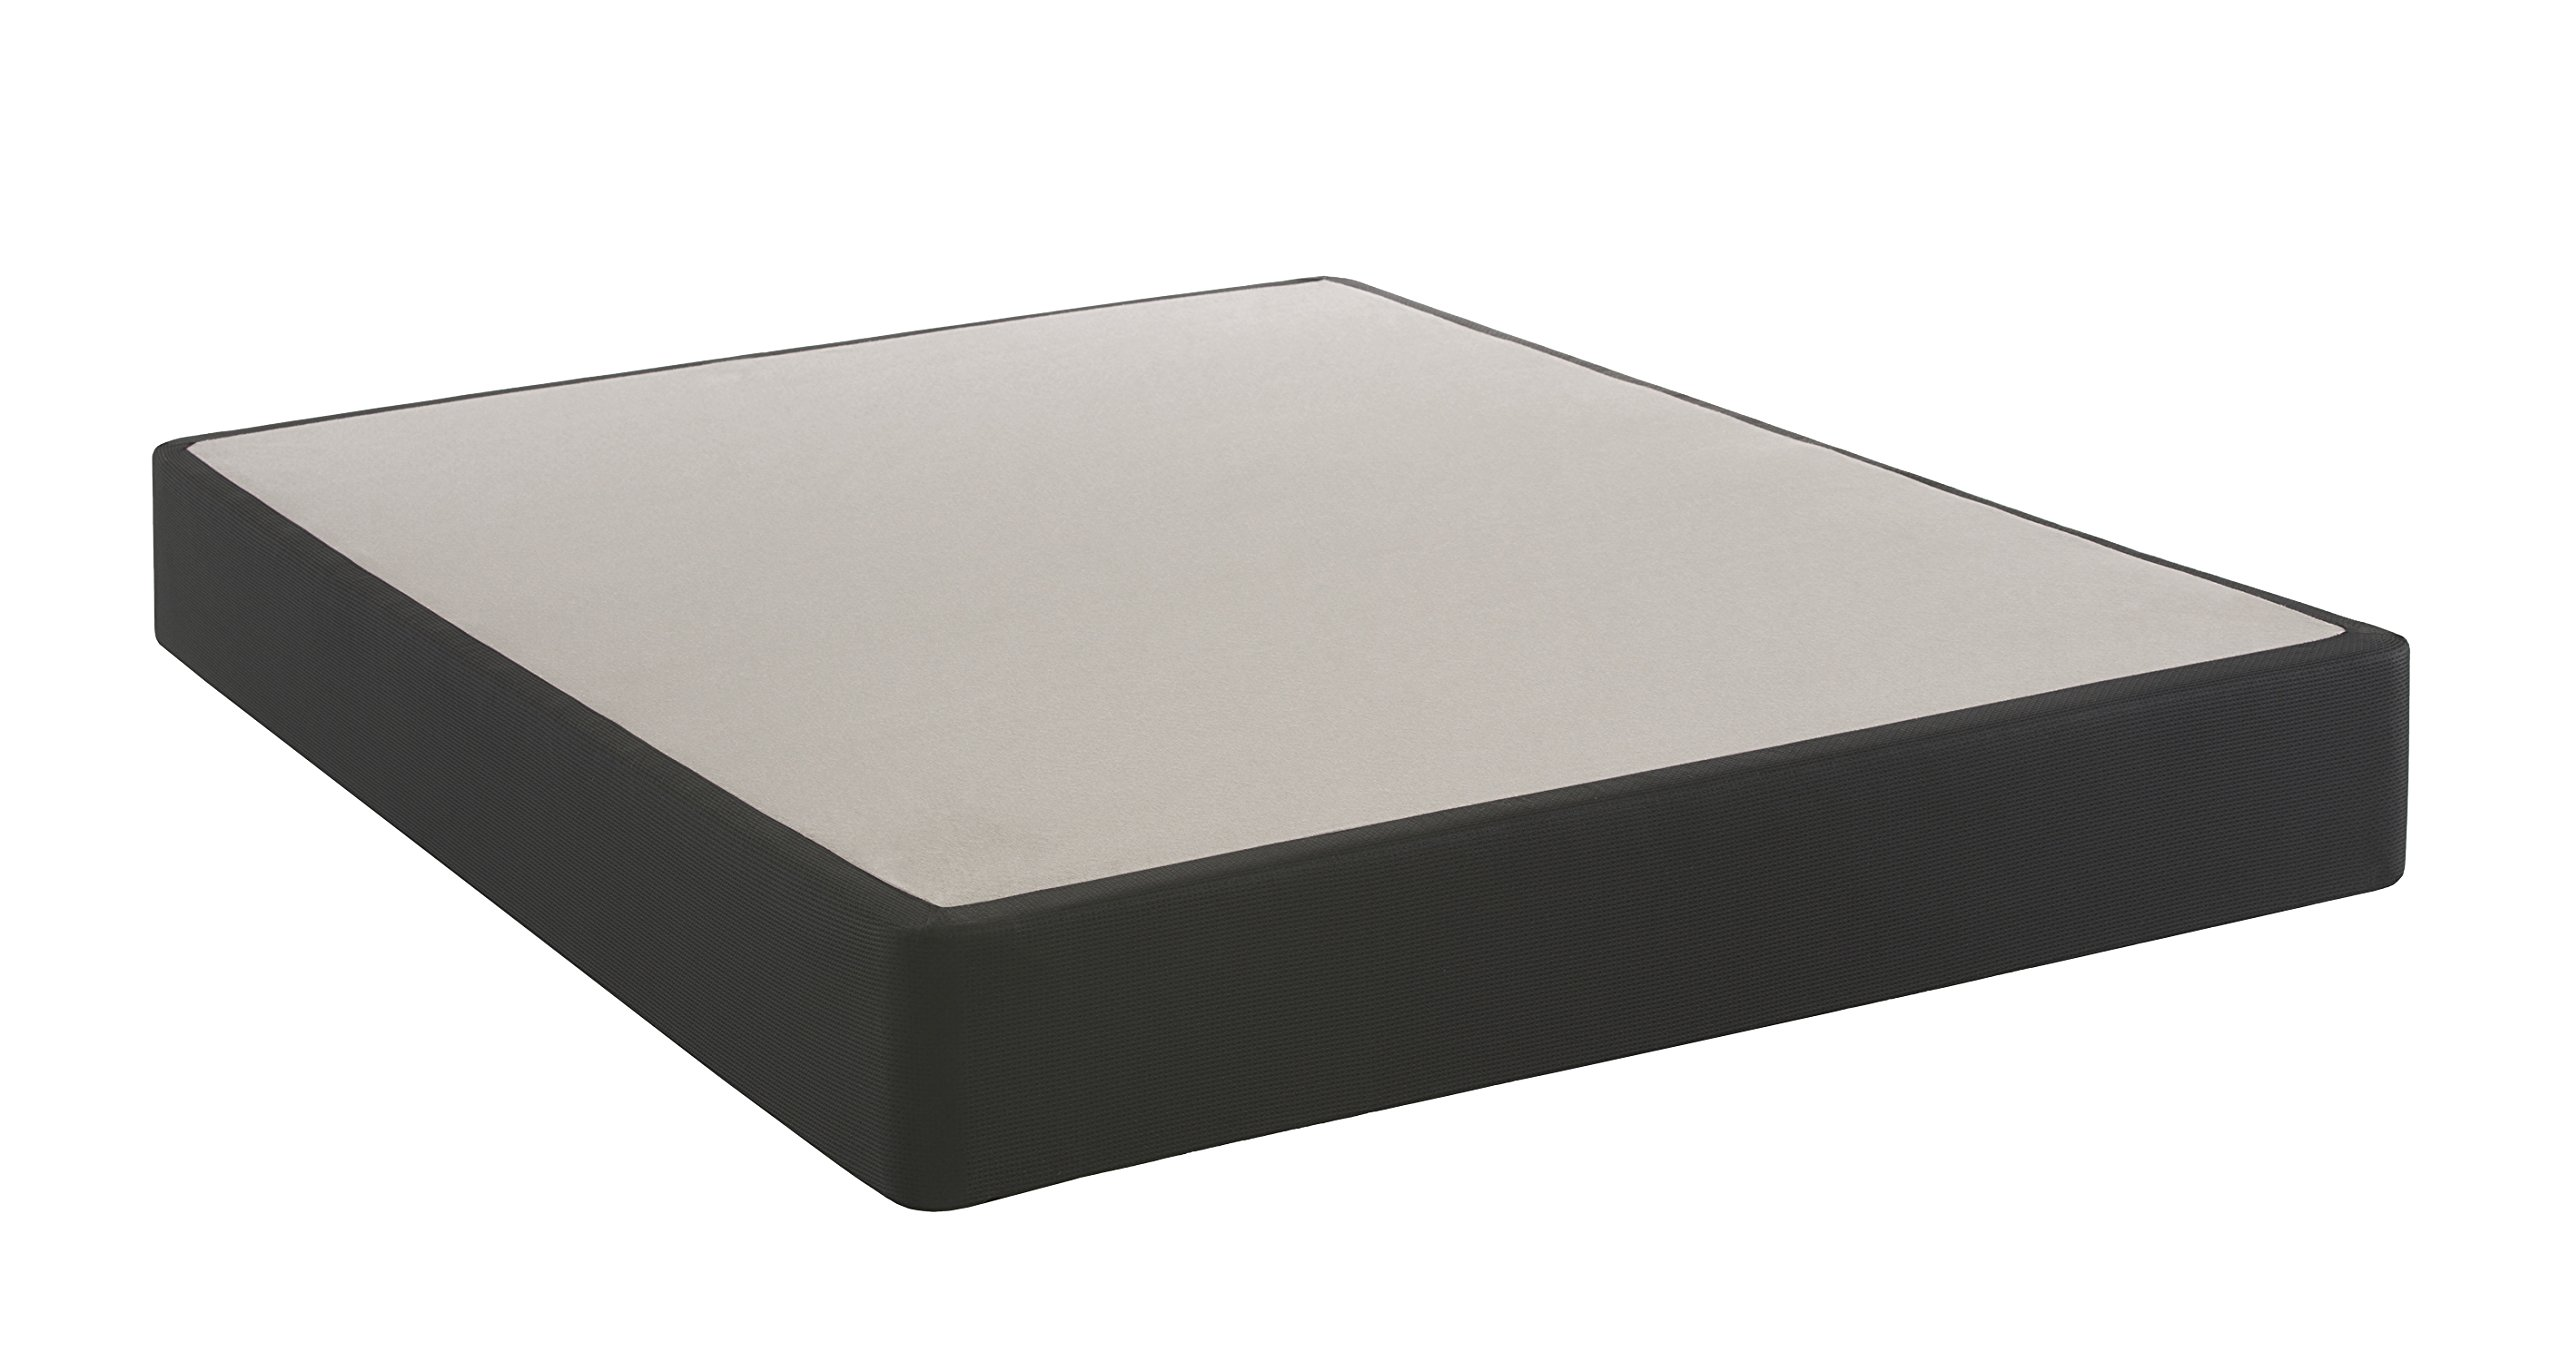 Sealy 9-Inch High Profile Base Foundation, Full by Sealy